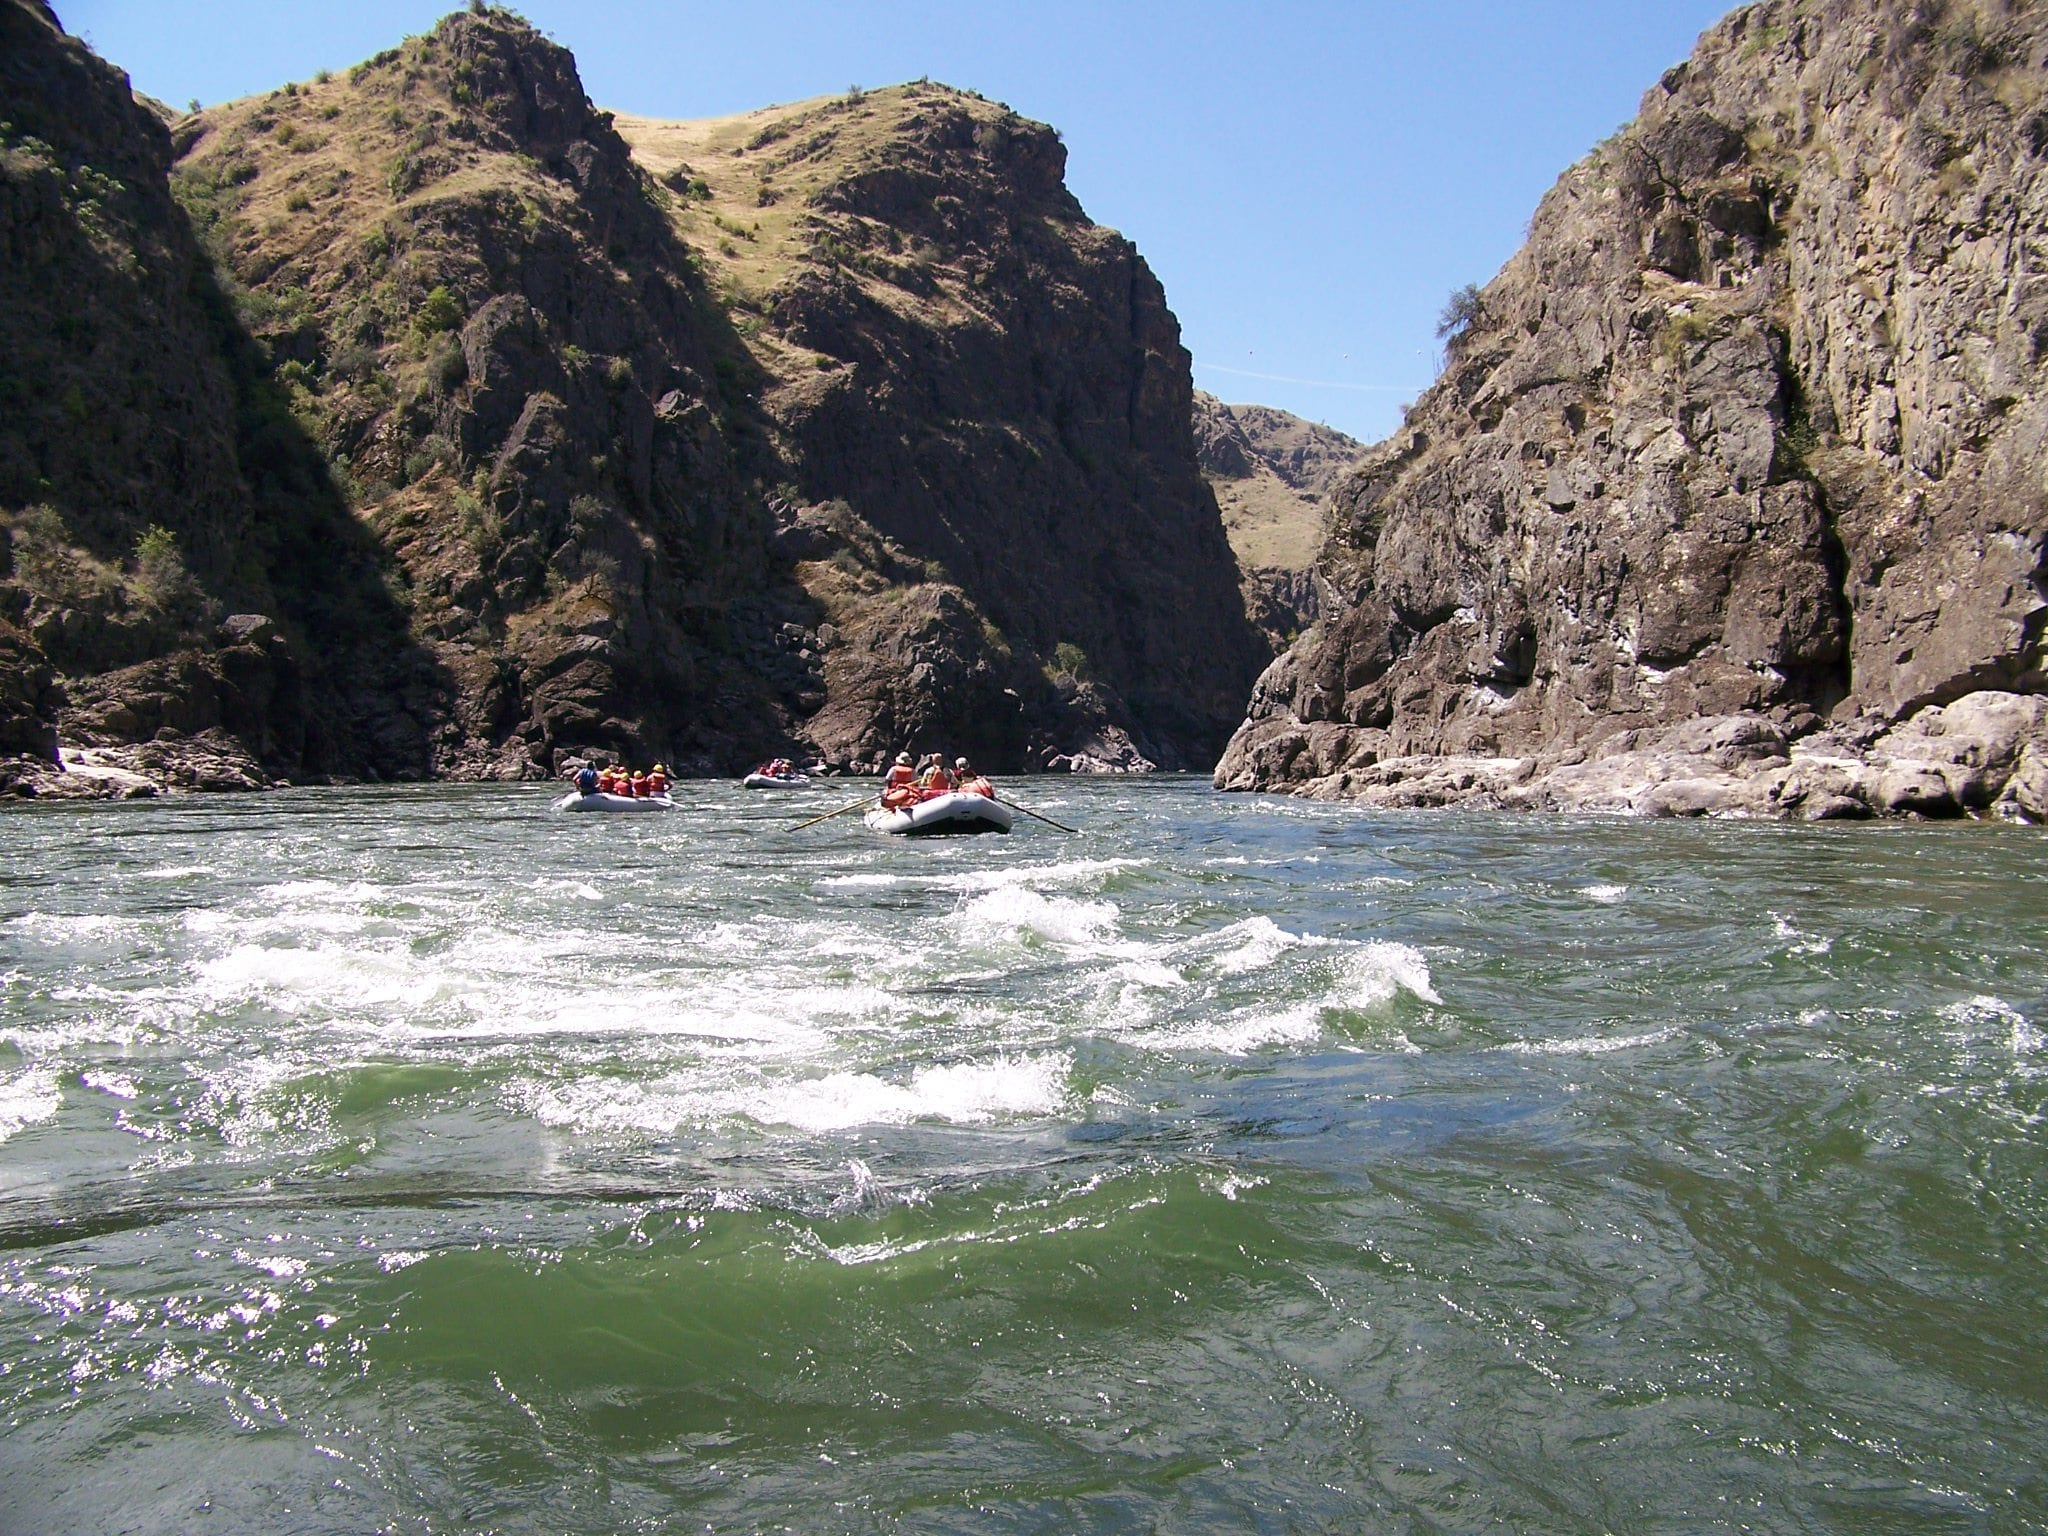 River Trips through Hells Canyon, When is the best time?